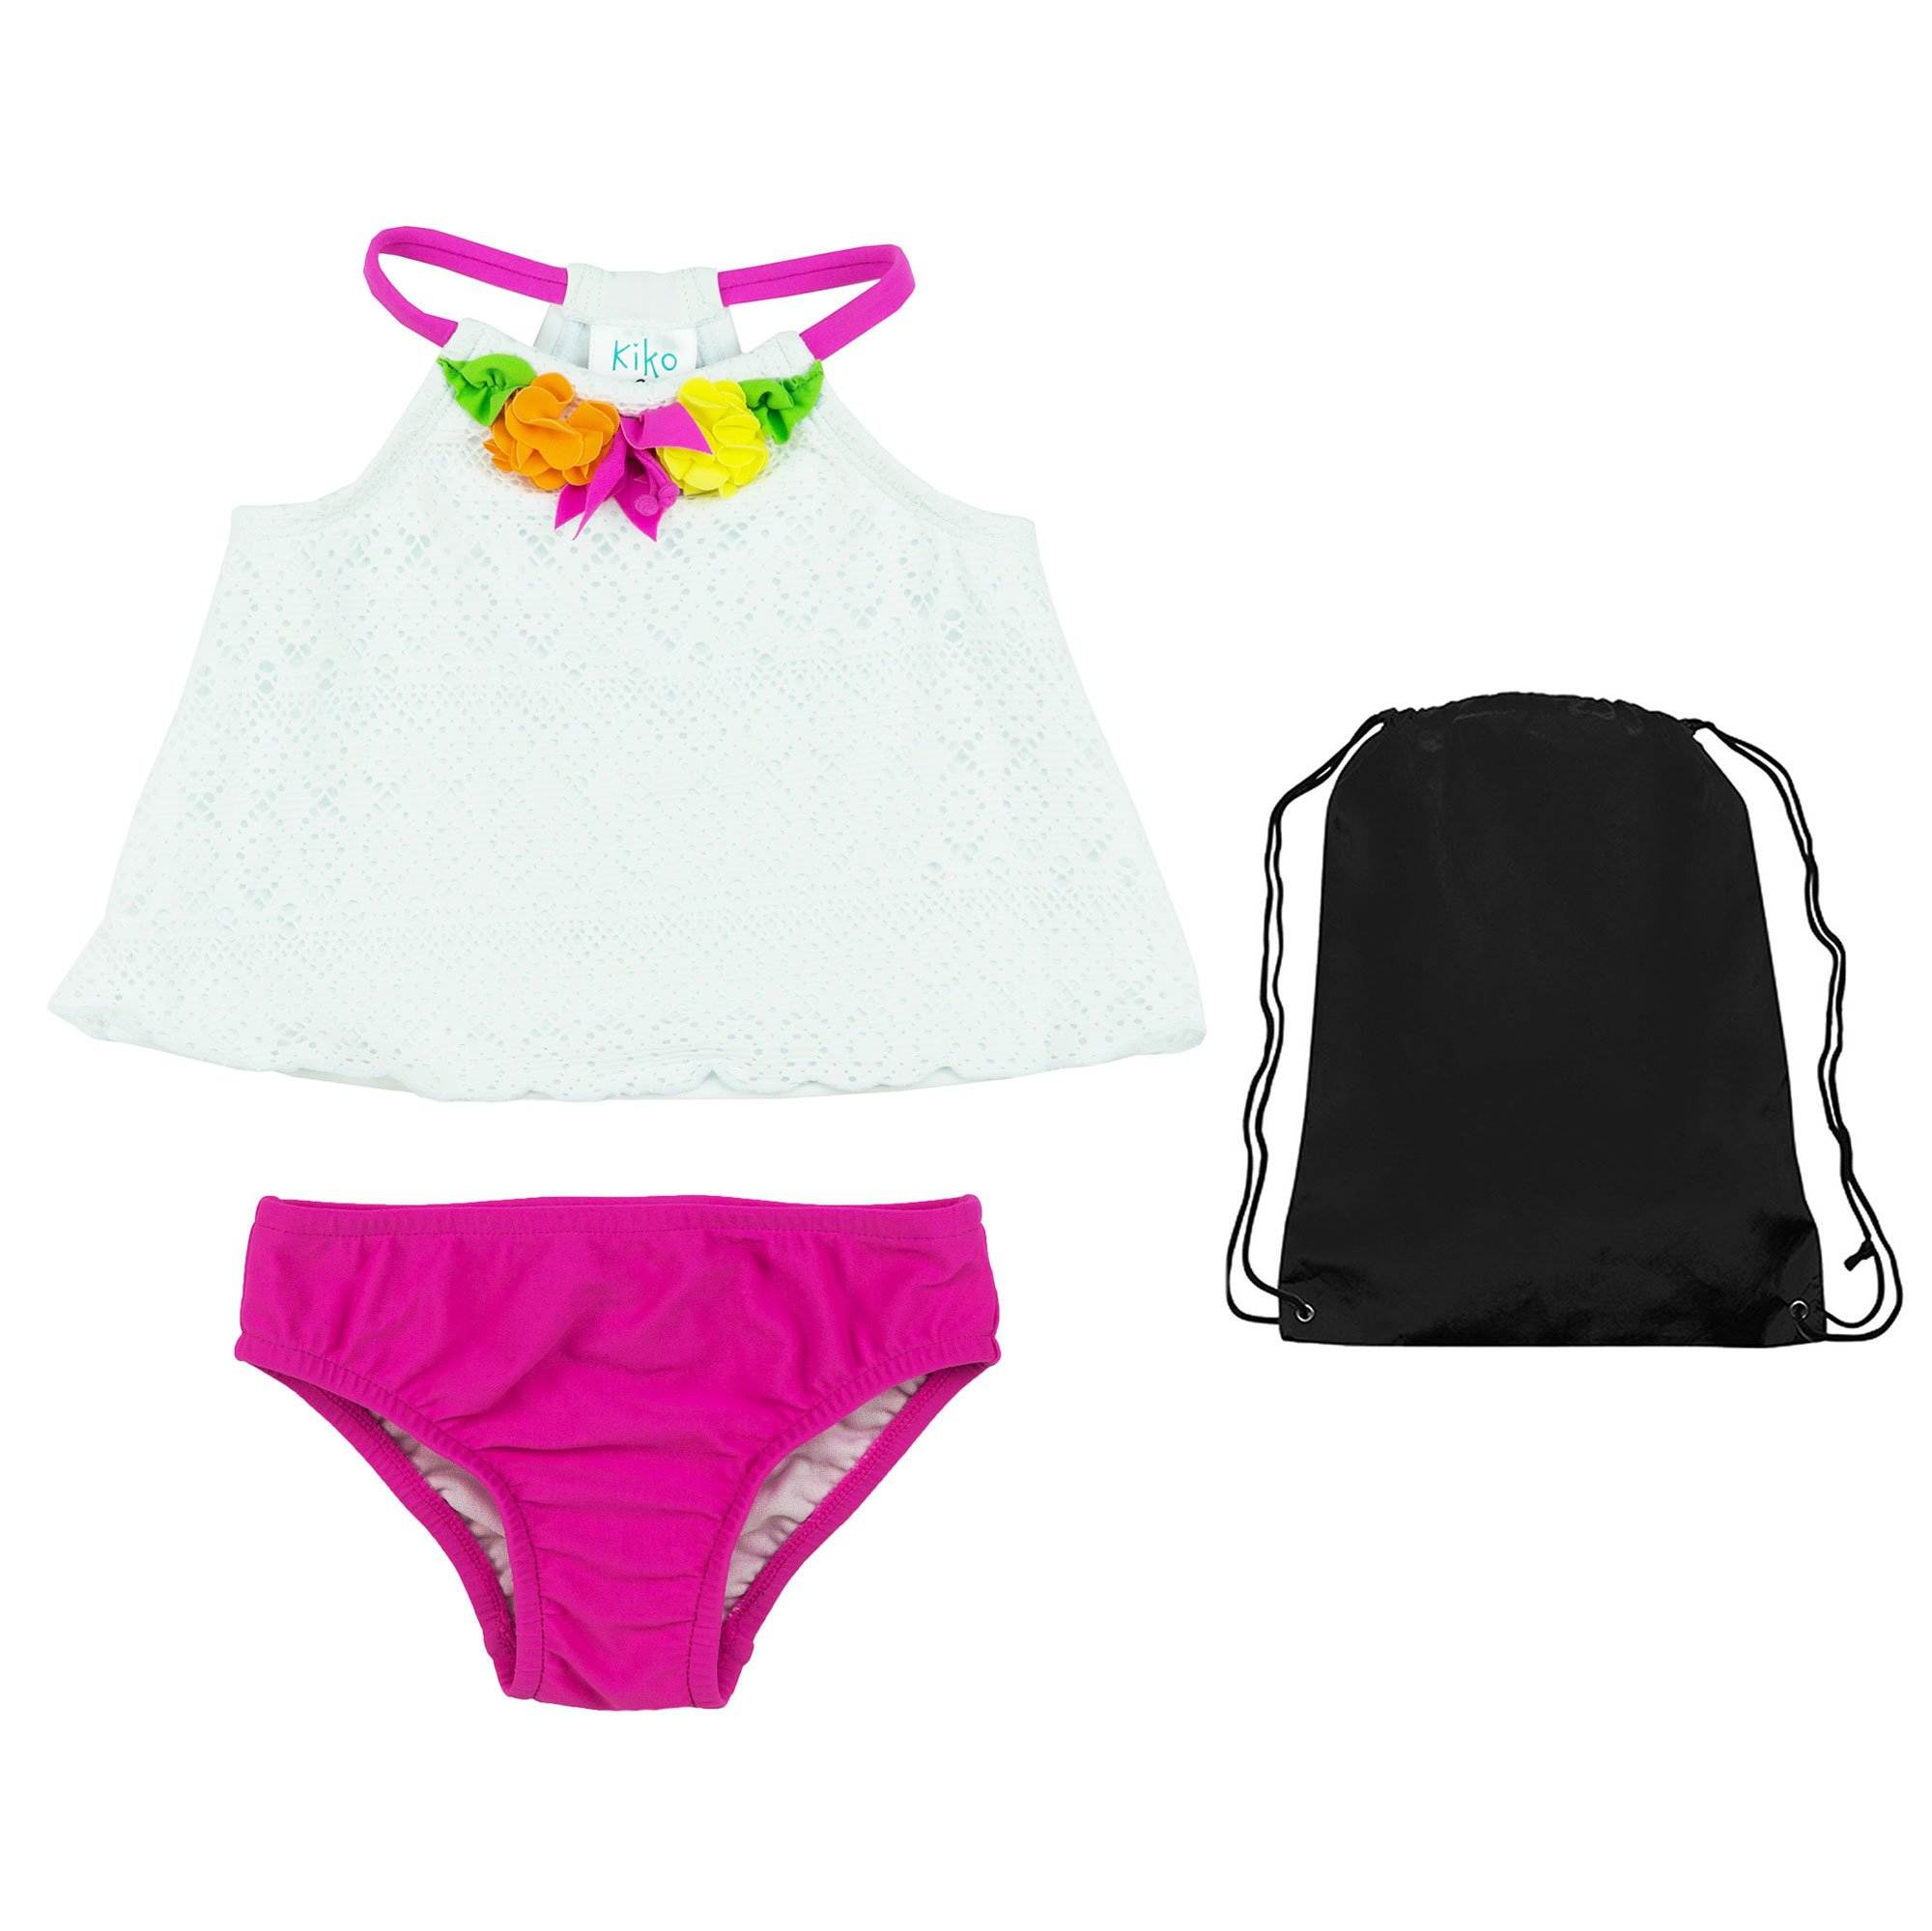 Kiko & Max 2 Piece Tankini White Eyelet Lace and Pink Floral Swimsuit with Bag 5